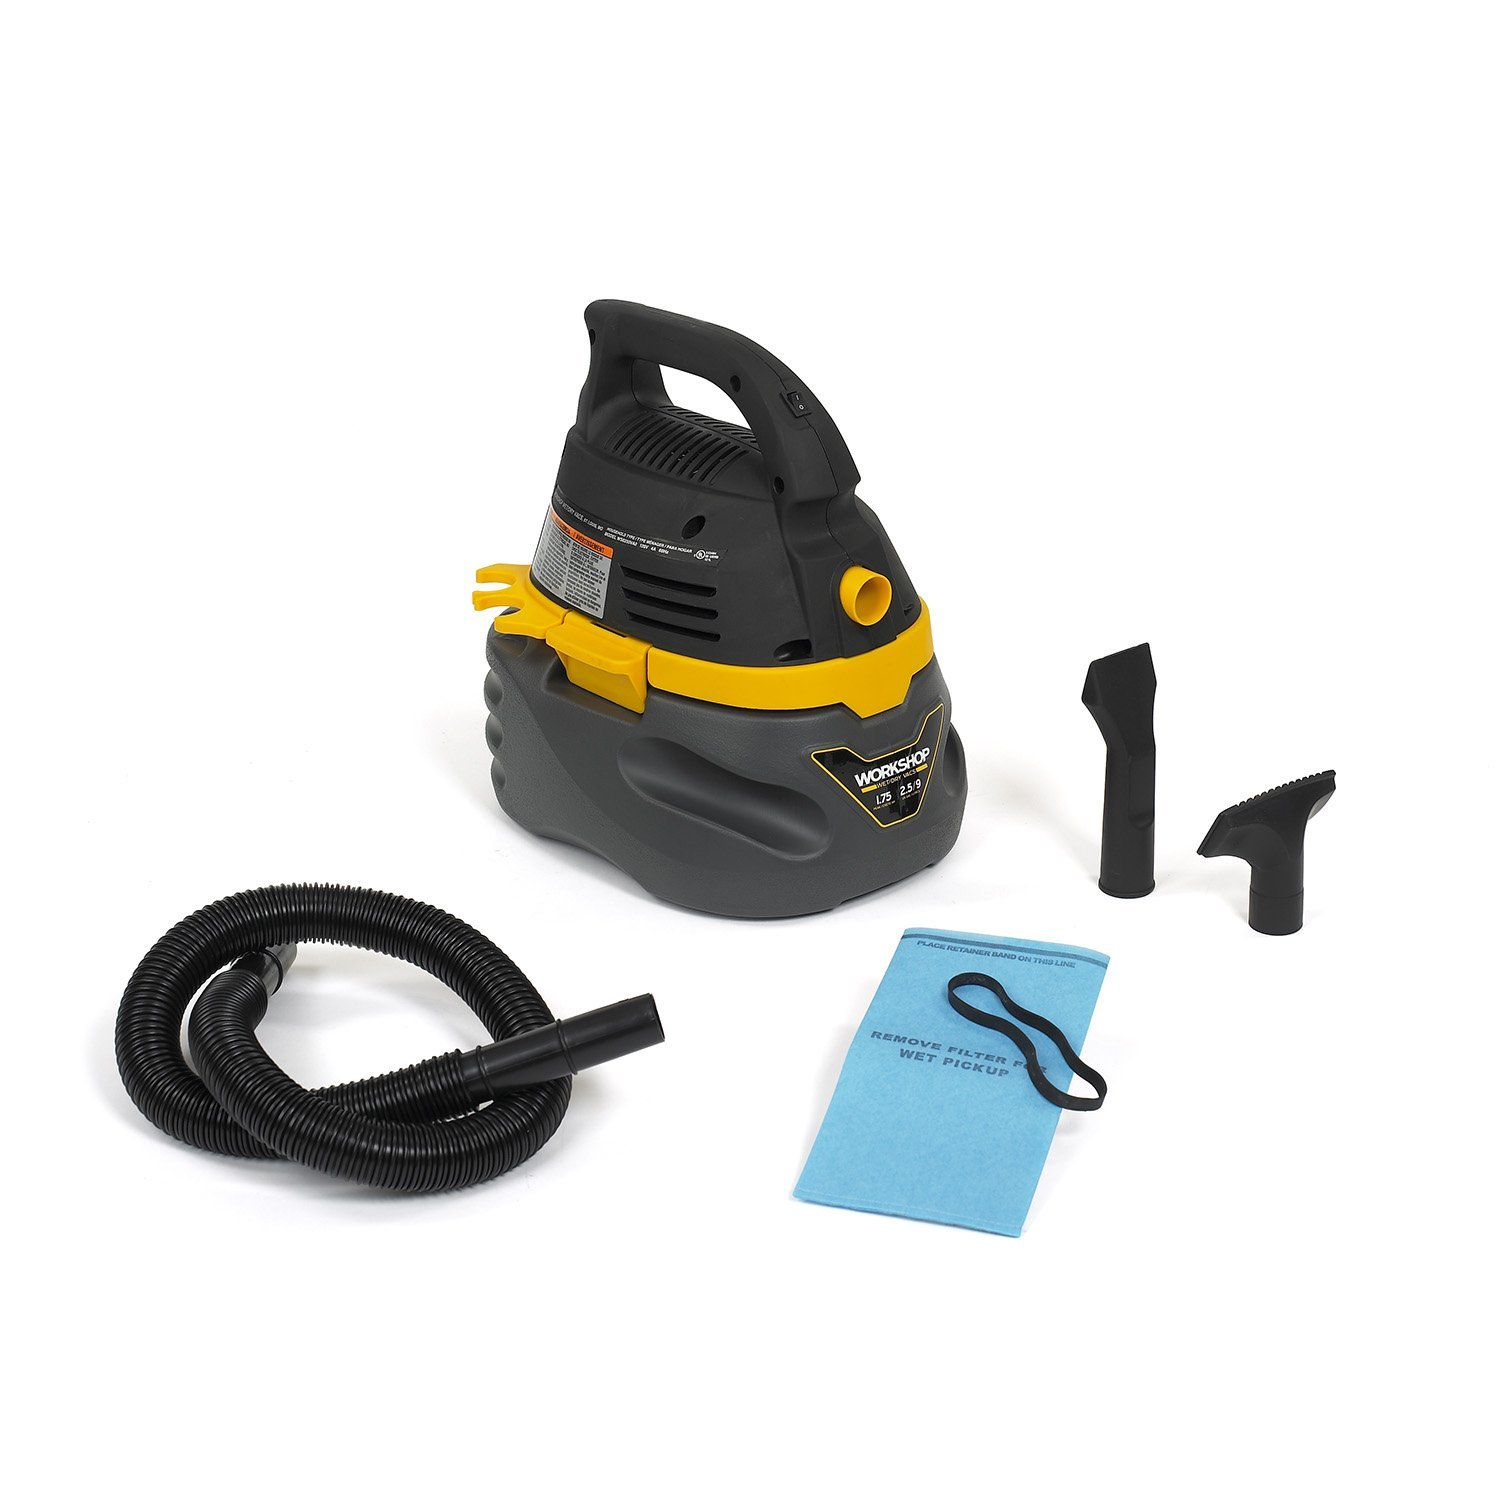 Best Portable Shop Vac In 2018 Reviews And Complete Guide